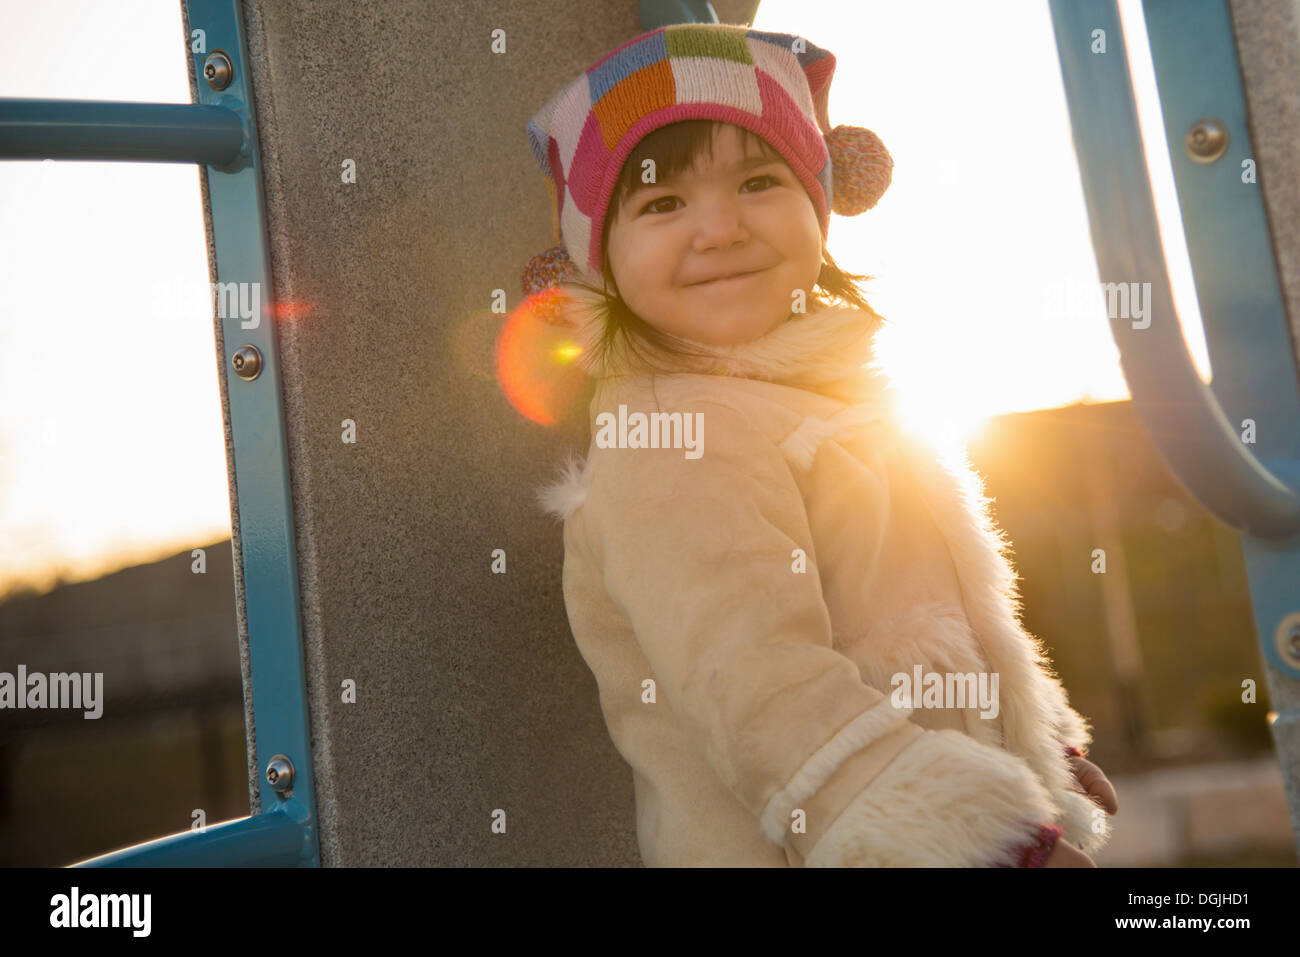 Portrait of young girl in sheepskin coat in playground - Stock Image